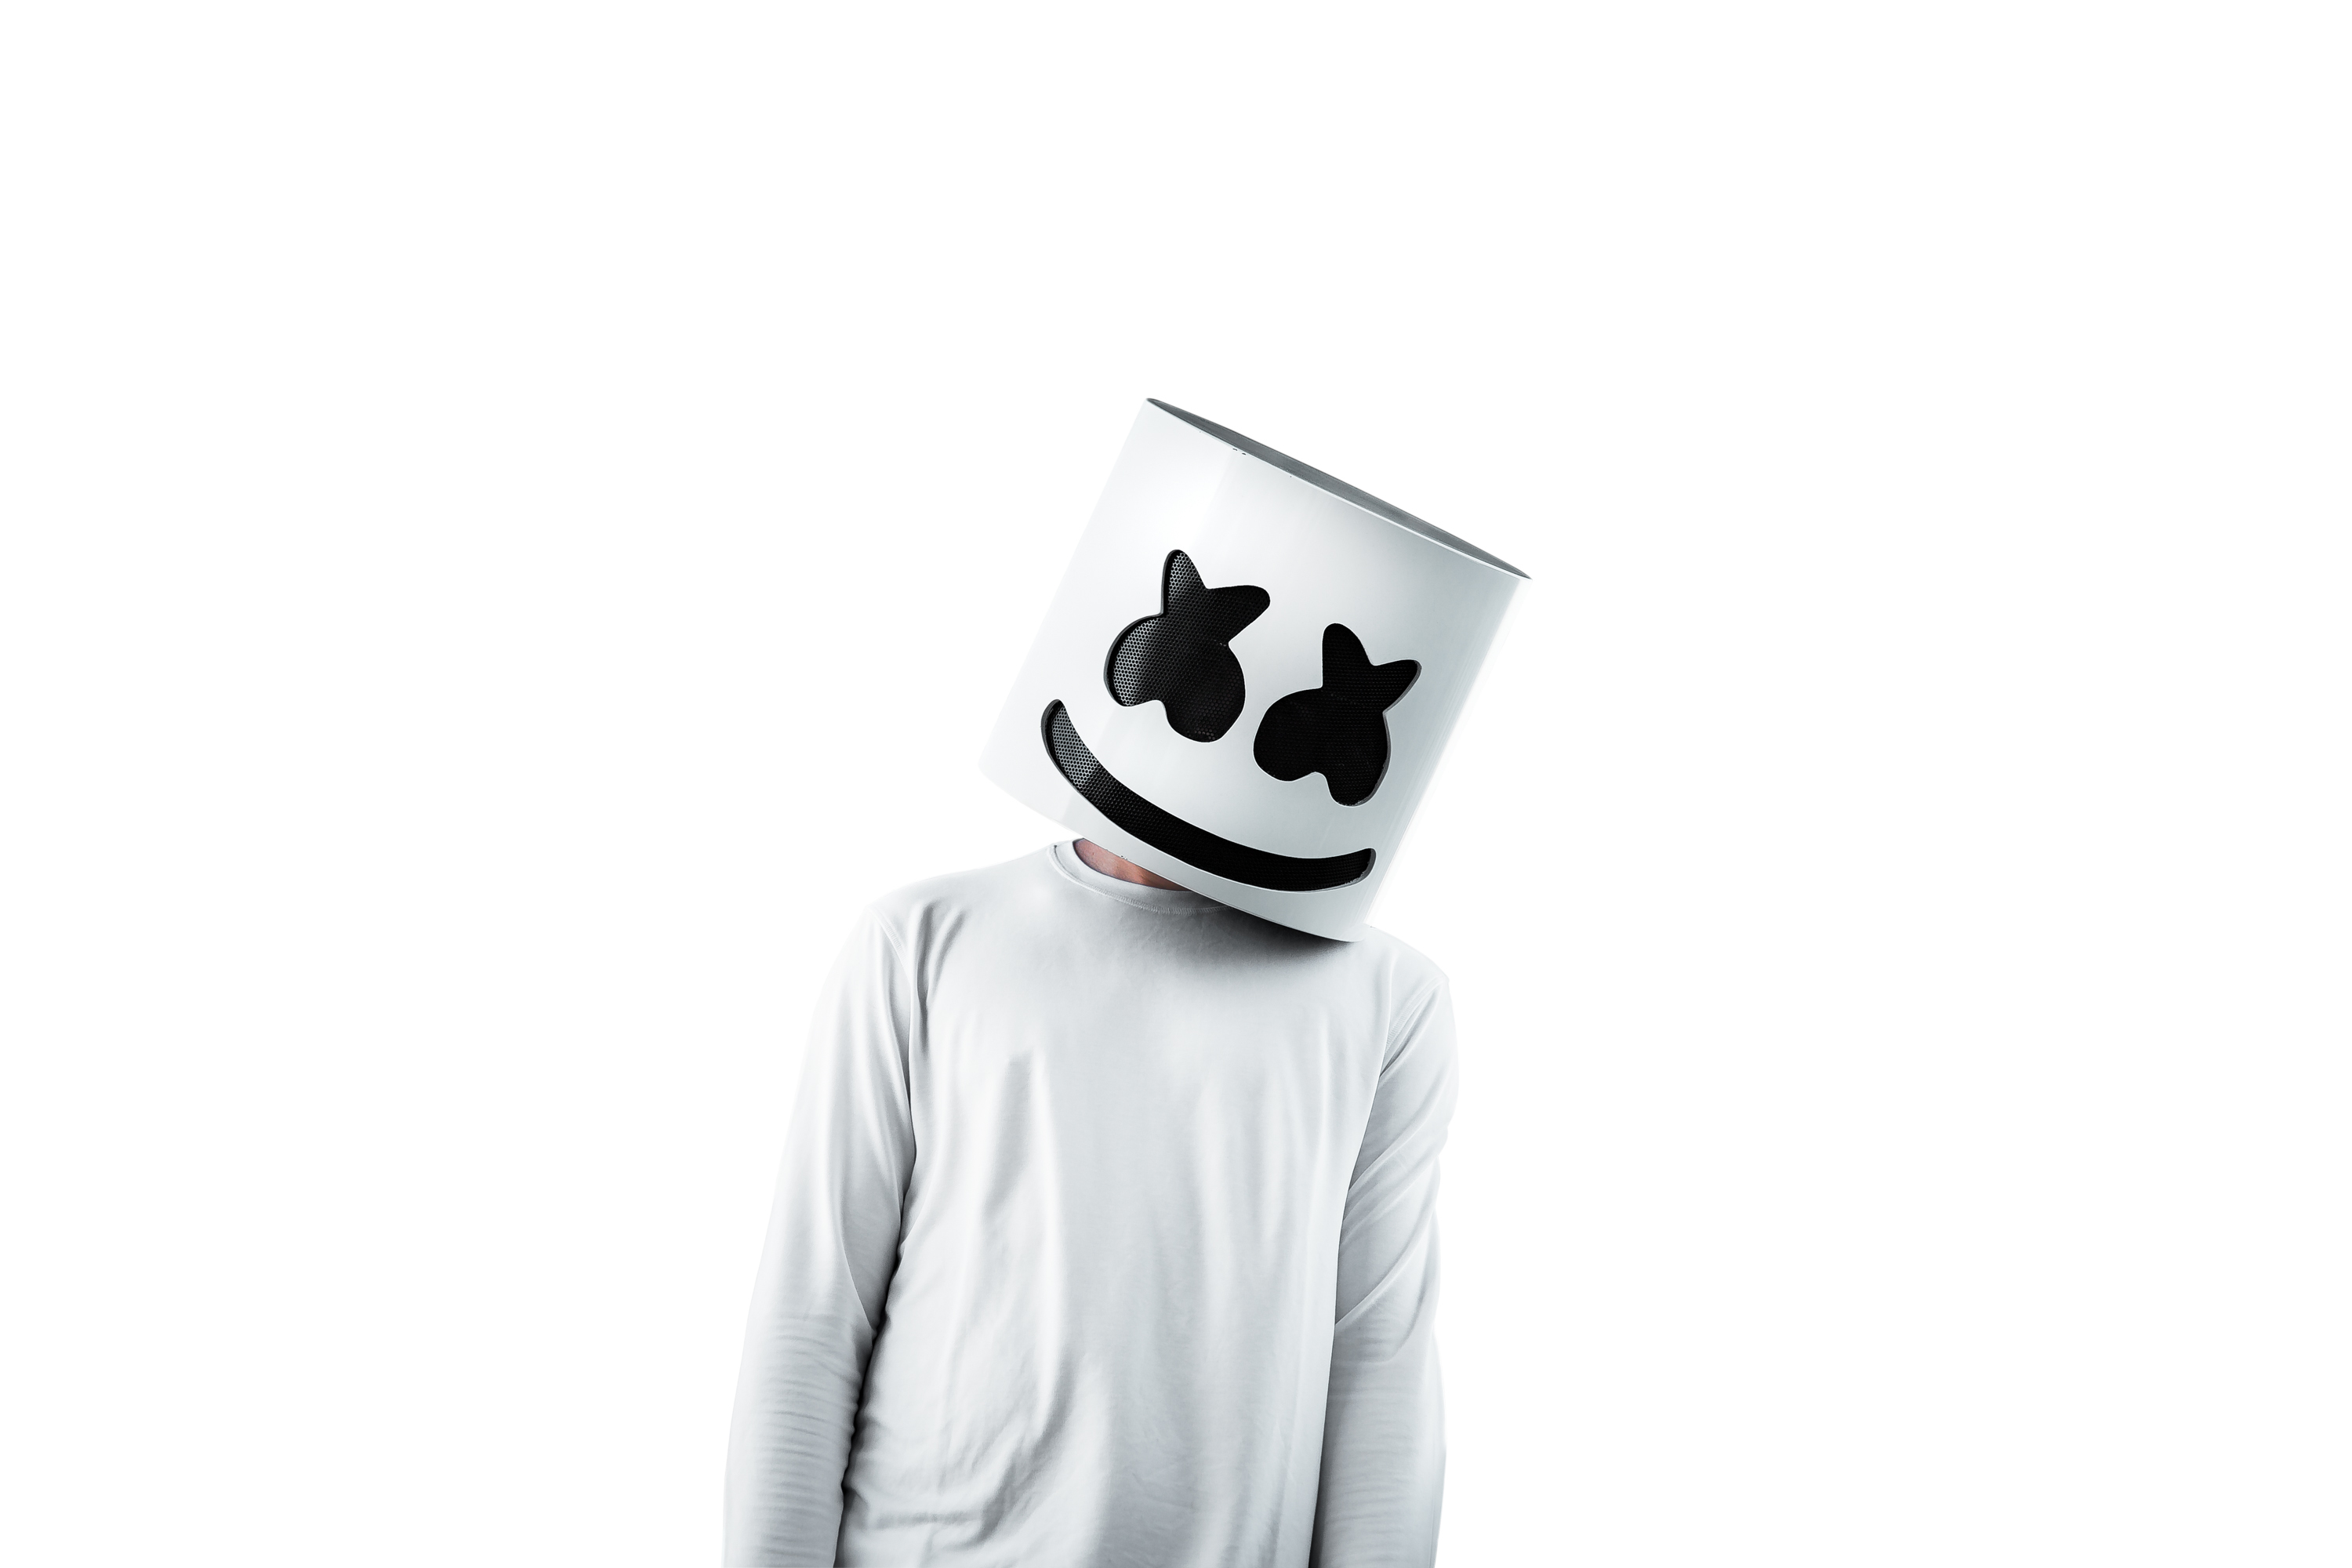 b900eb40b6d6 Someone Dressed up as Marshmello and Played a Set at an Established  Singapore Club